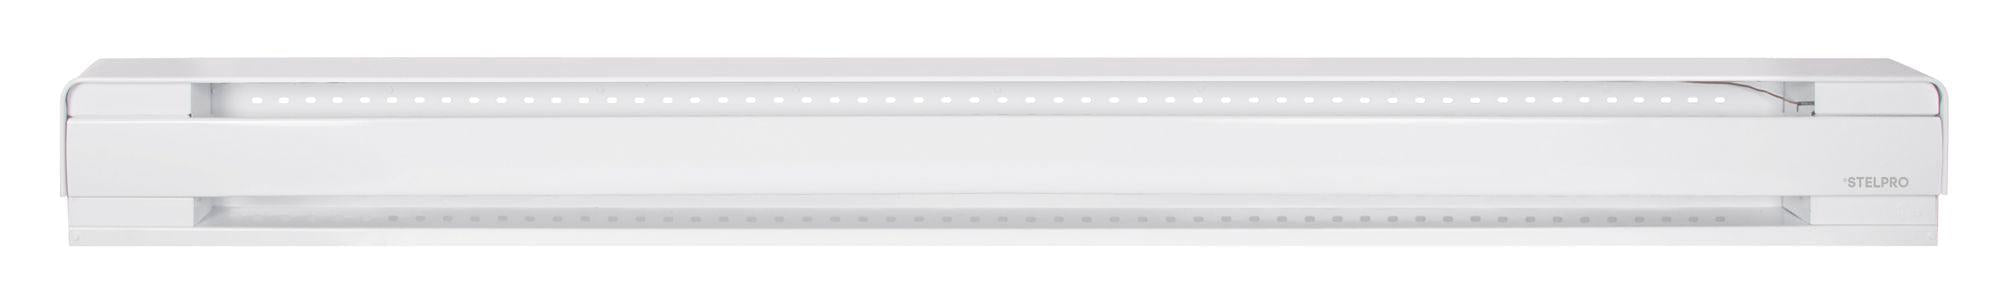 The B1502W Brava electric baseboard heater is ideal for the bathroom, bedroom, living room, hallways, commercial spaces and offices. It's one piece design makes it quick and easy to install. SKU: SETB1502W  UPC:626296184592